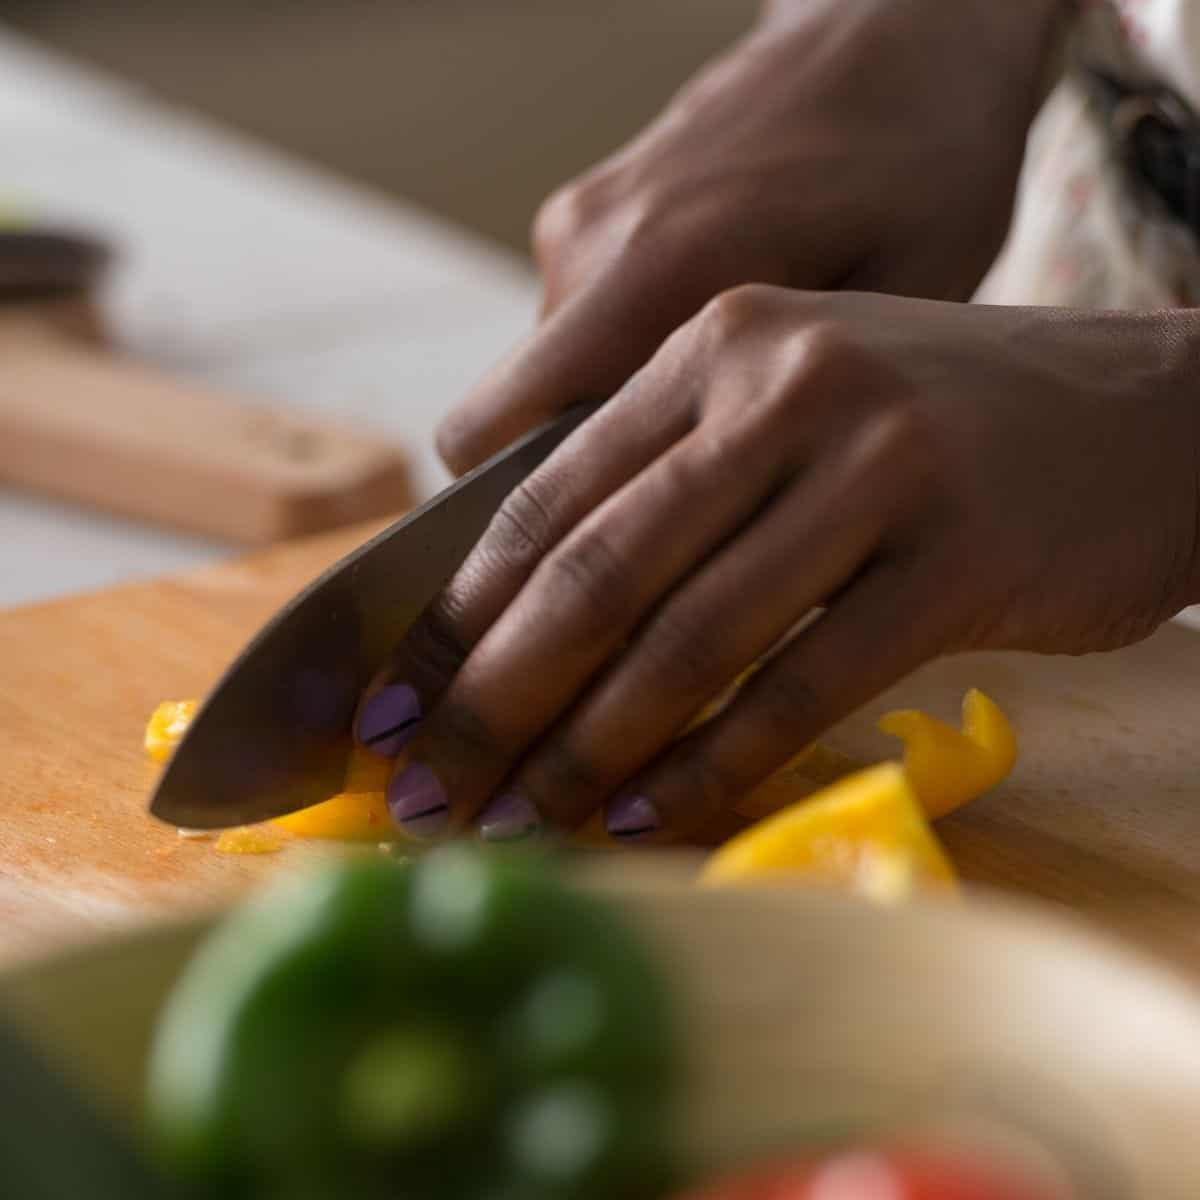 woman chopping food